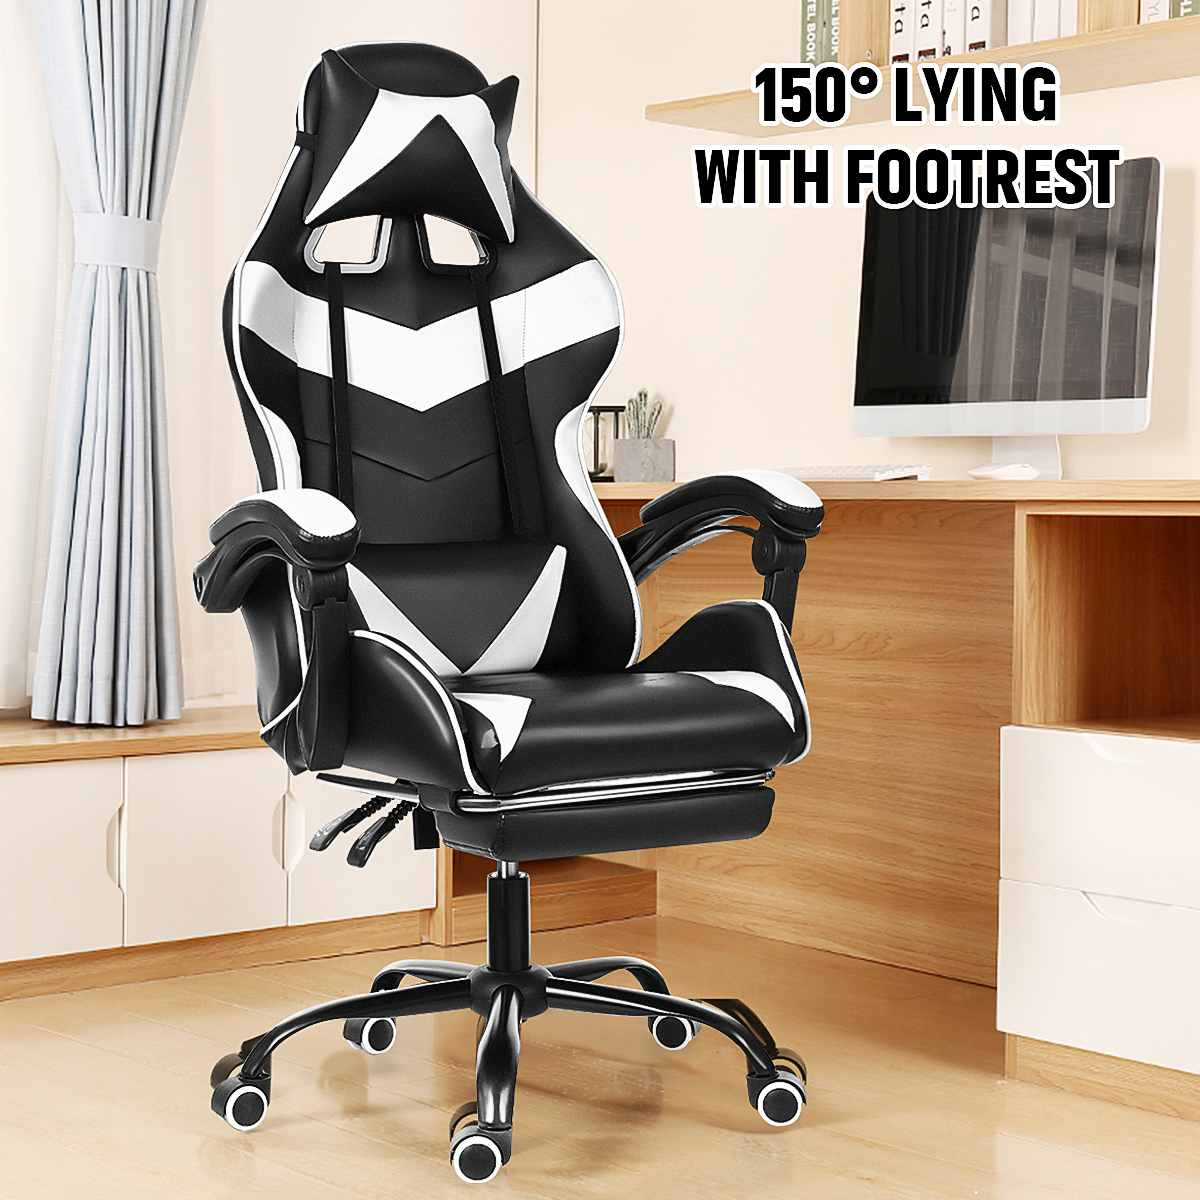 Hdd011992906e41faa15fefd182452f1a3 - Office Chair WCG Computer Gaming Chair Reclining Armchair with Footrest Internet Cafe Gamer Chair Office Furniture Pink Chair